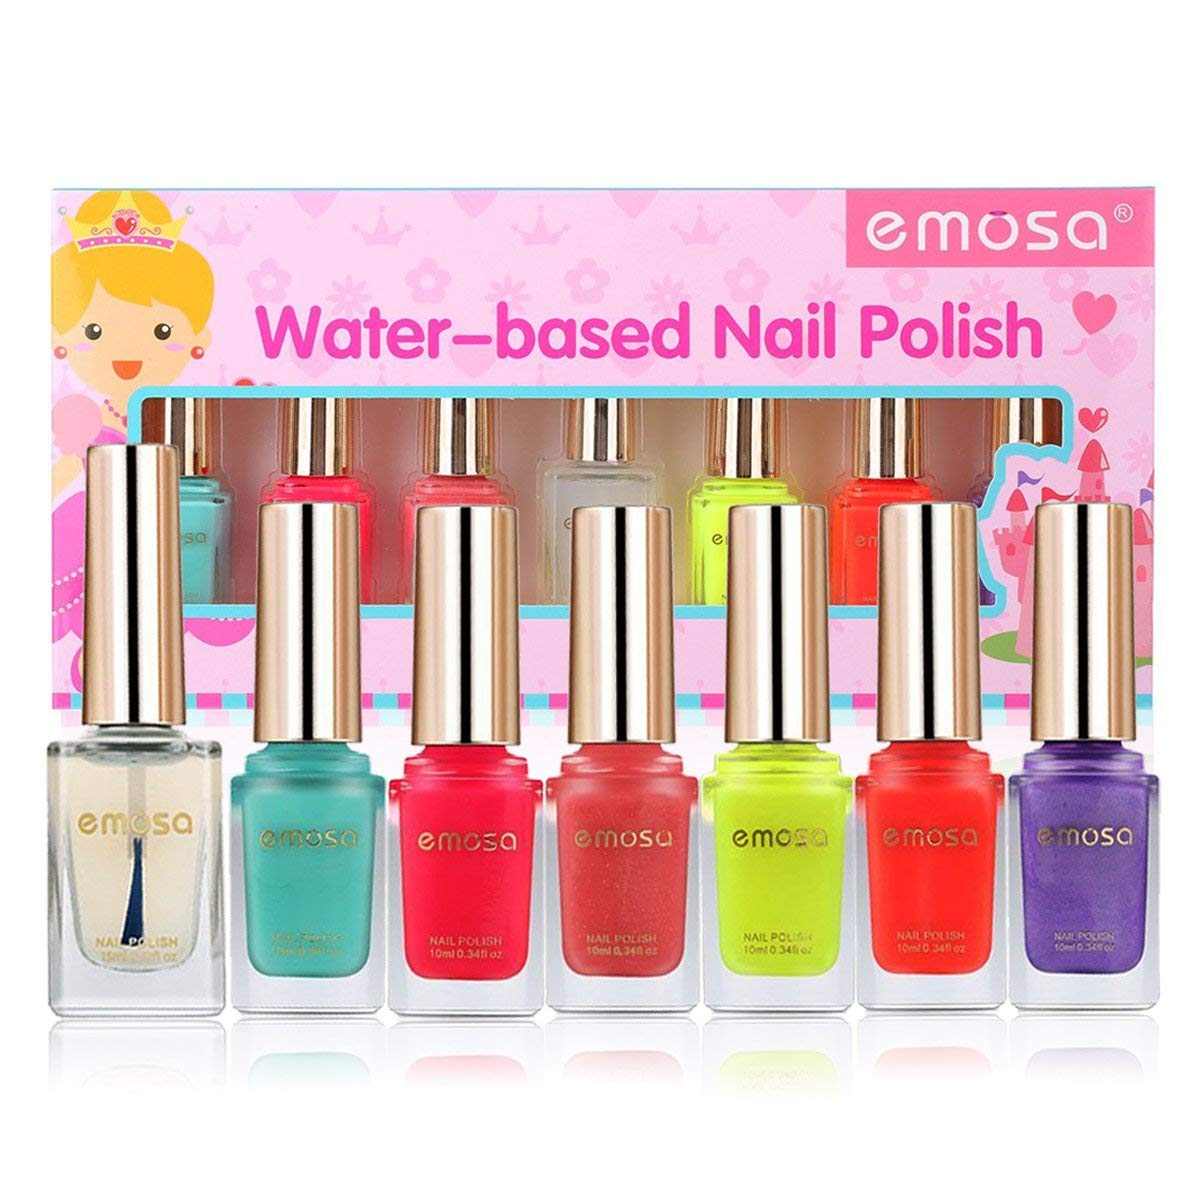 Emosa Nail Polish - Non-Toxic Water Based Peelable Natural, Safe and Chemical Free, Kids Friendly Makeup Set for Little Girls